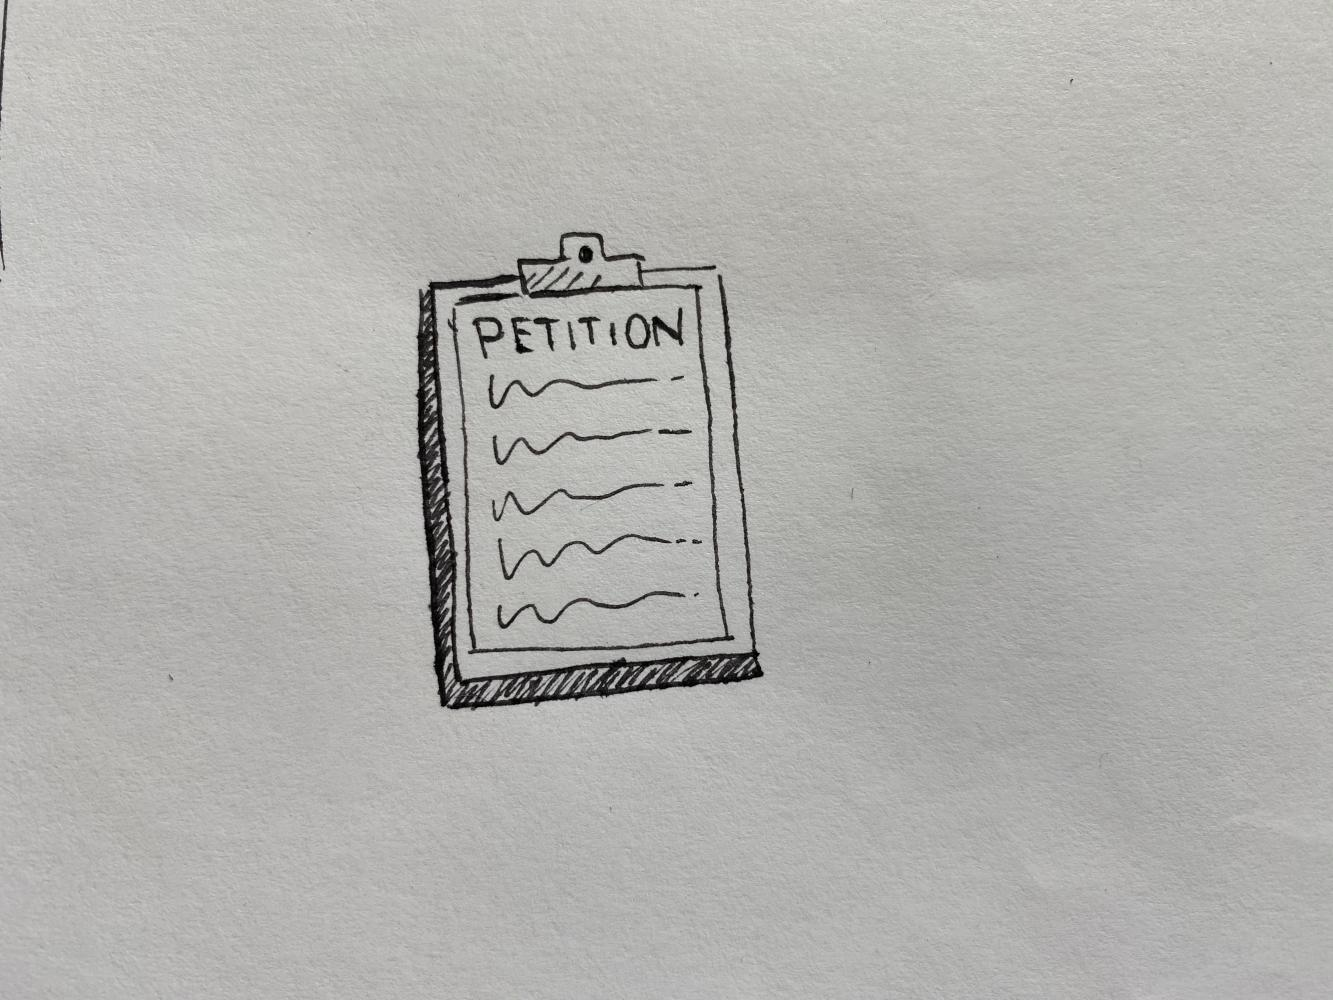 6th Form Petition